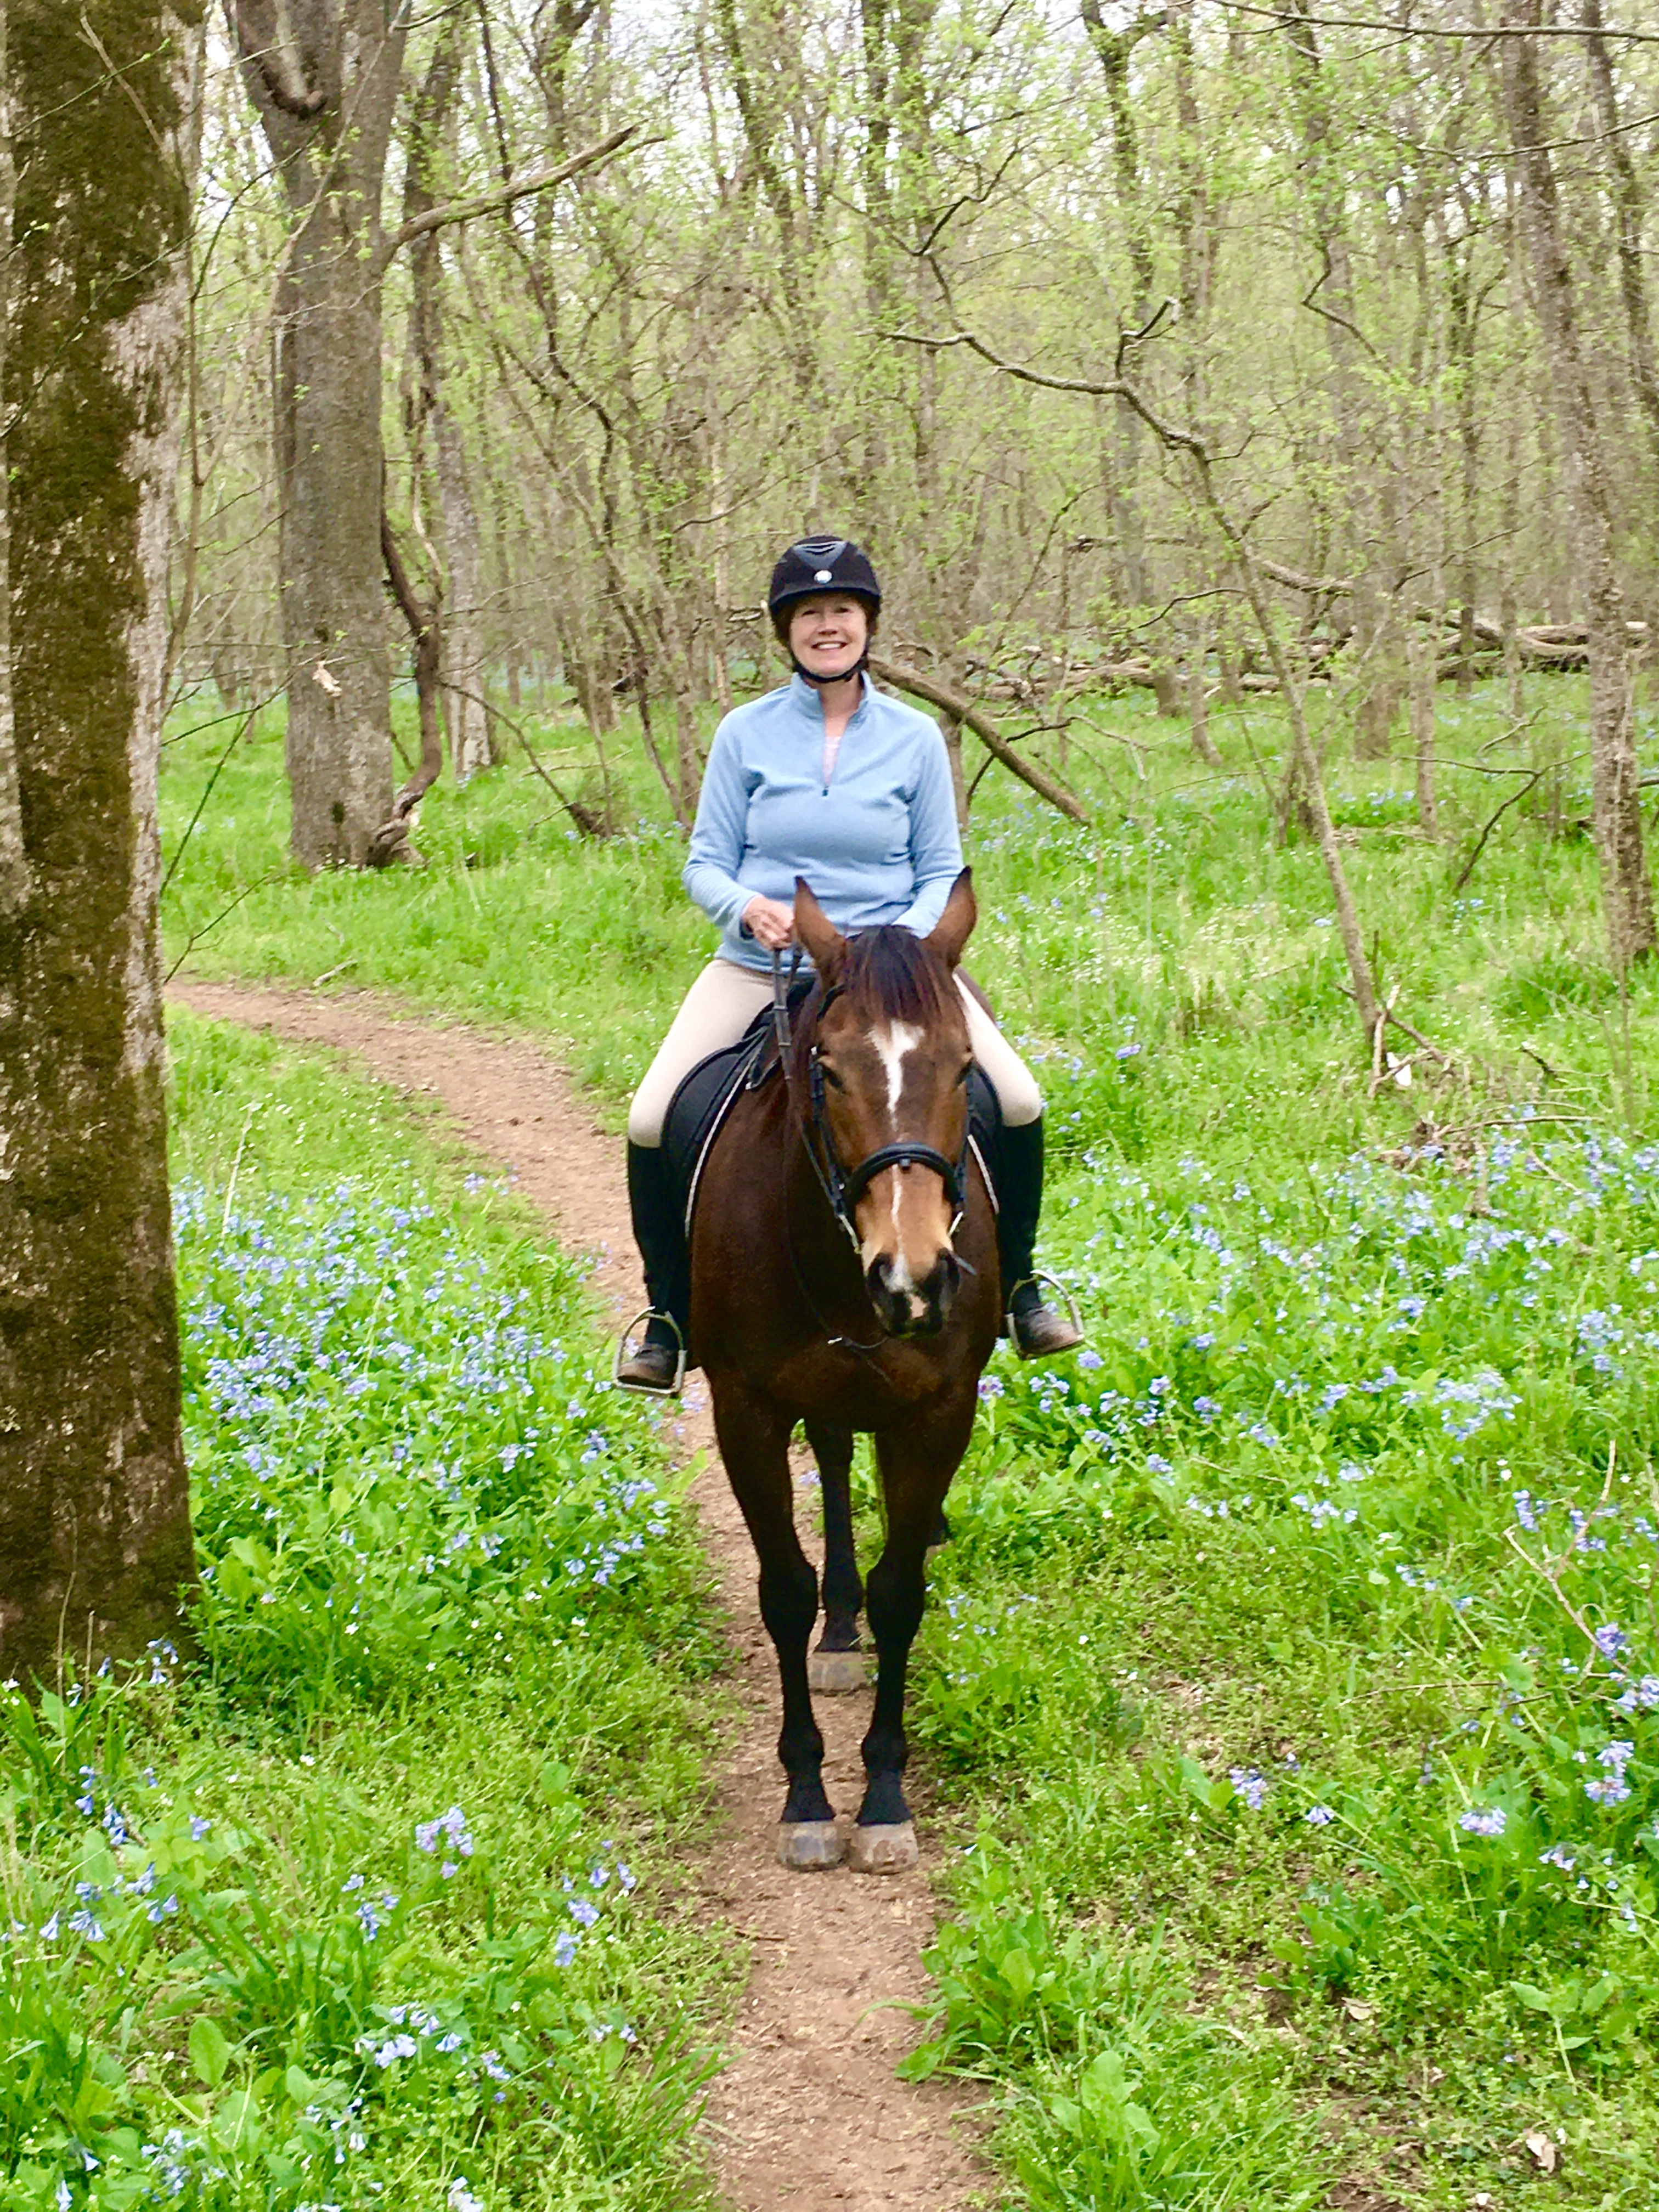 Trail ride during blue bell season.